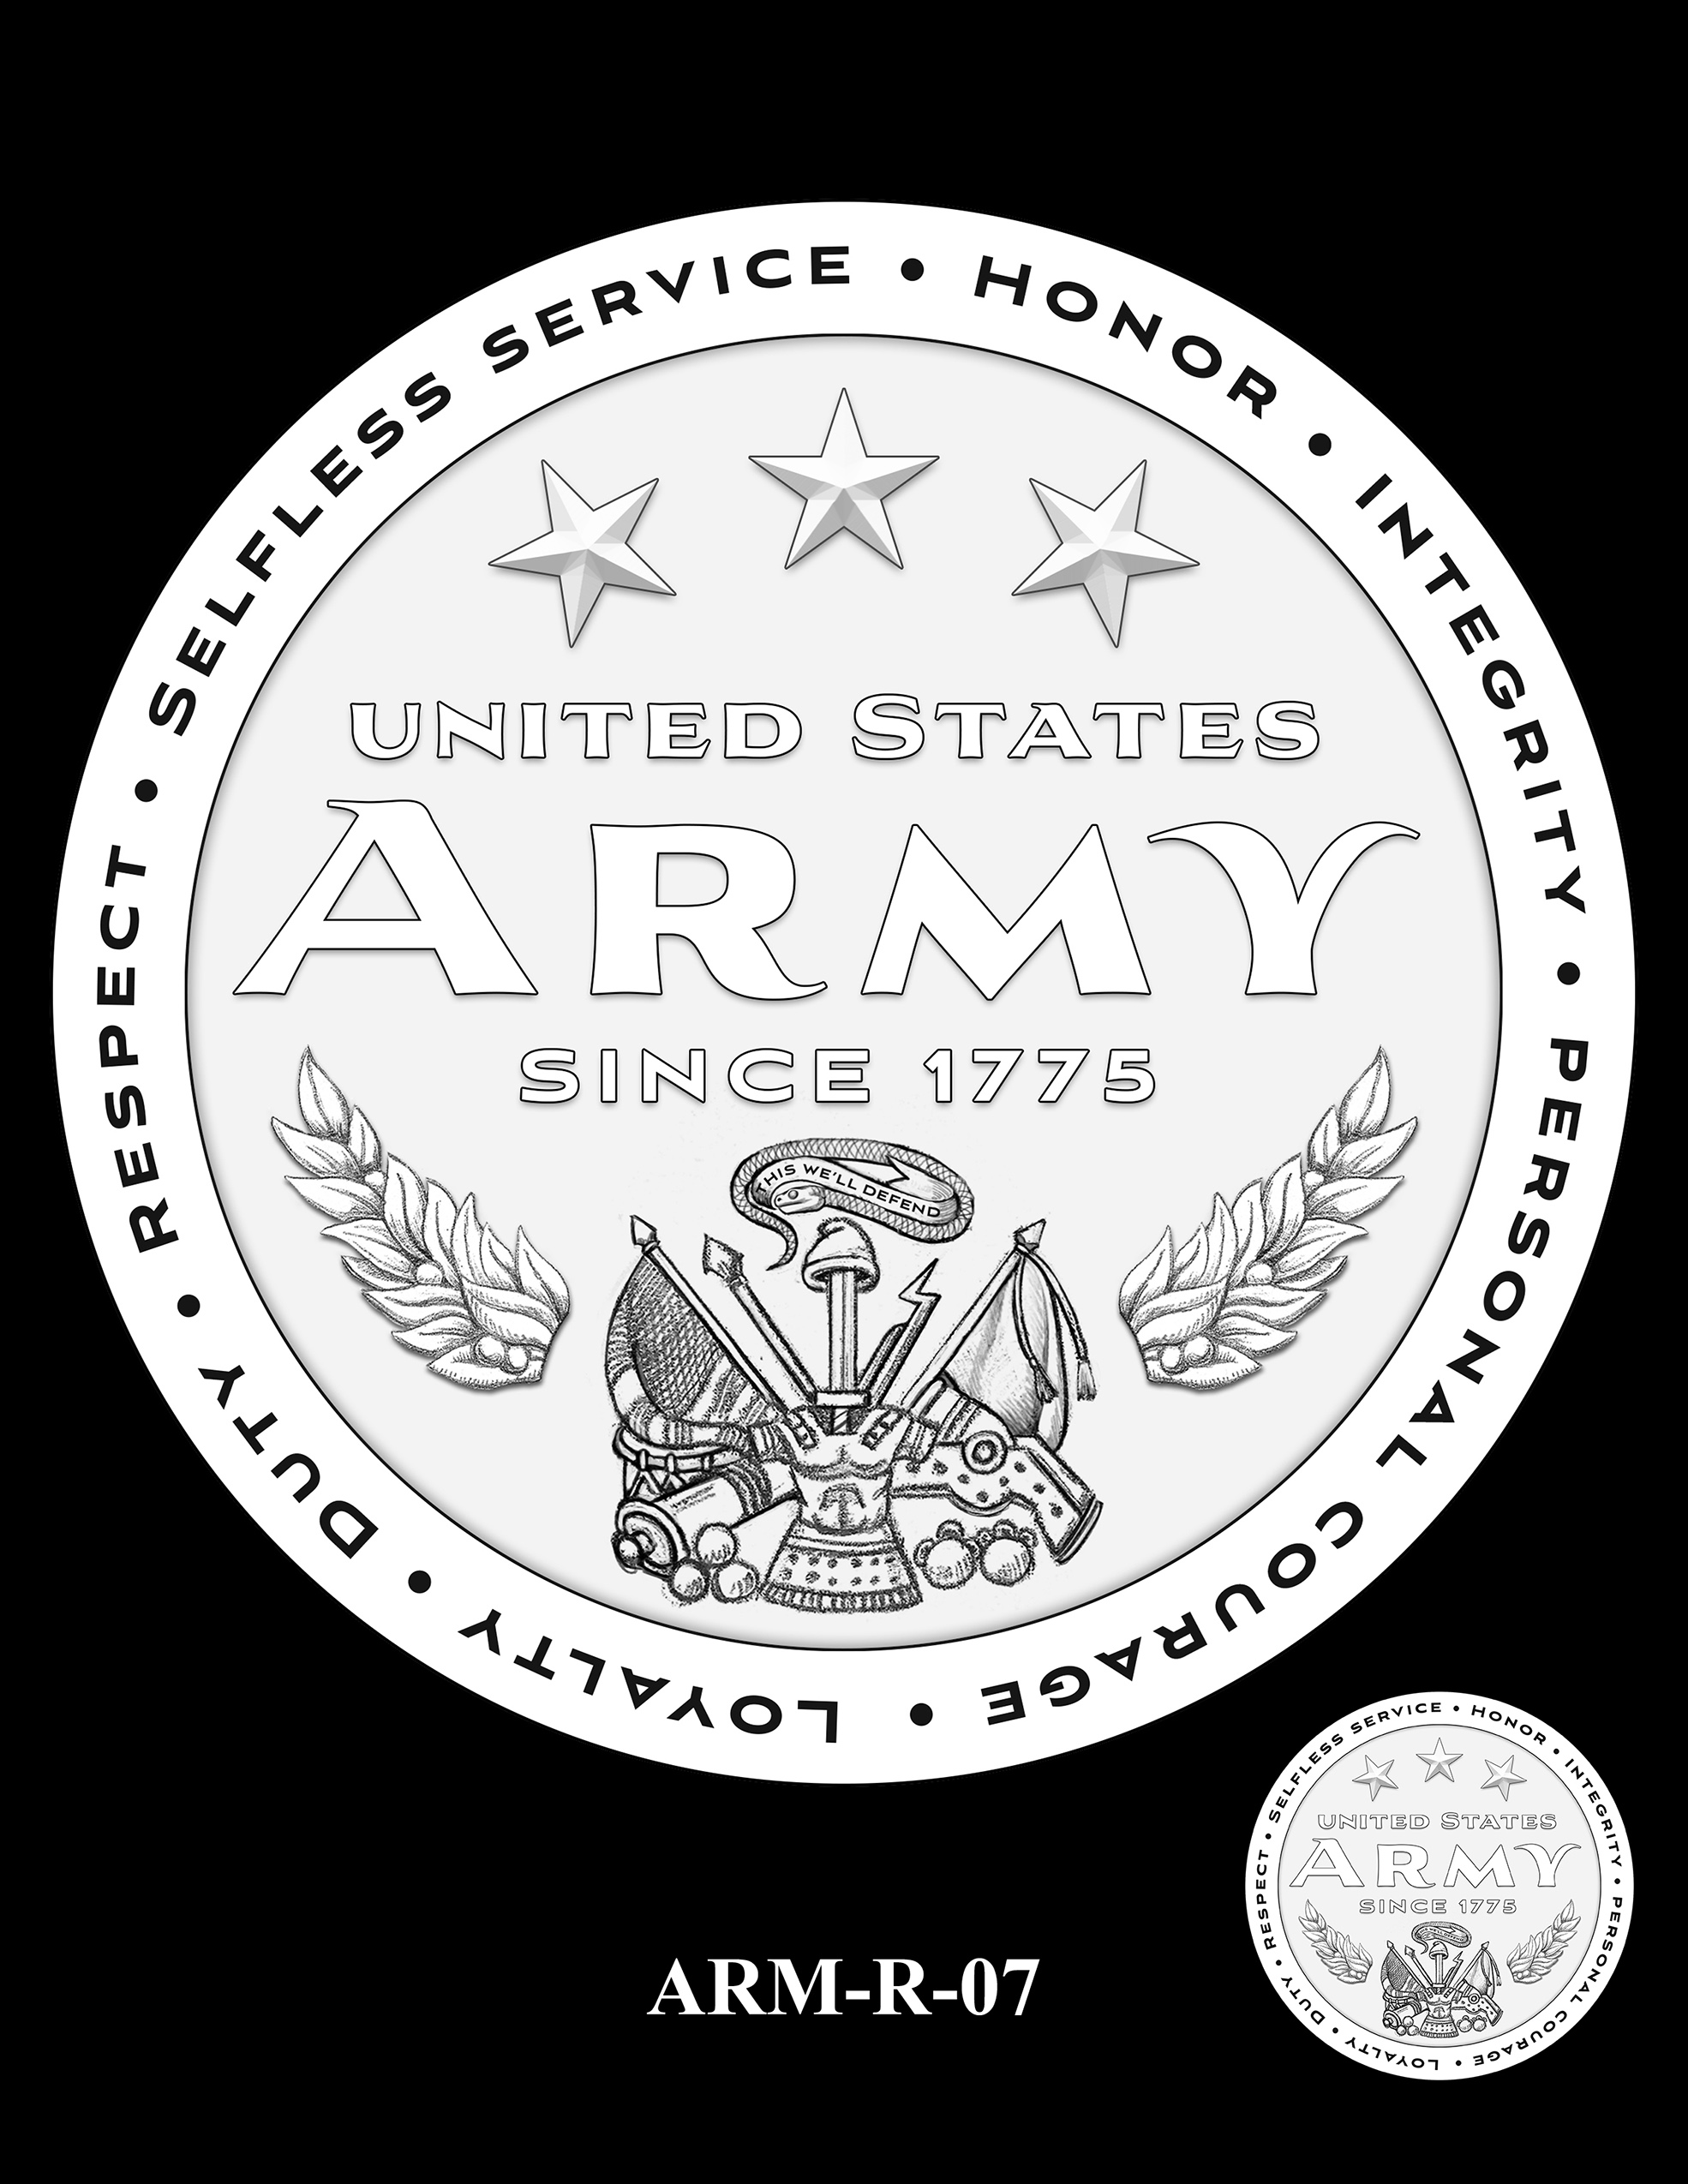 ARM-R-07 -- United States Army Silver Medal